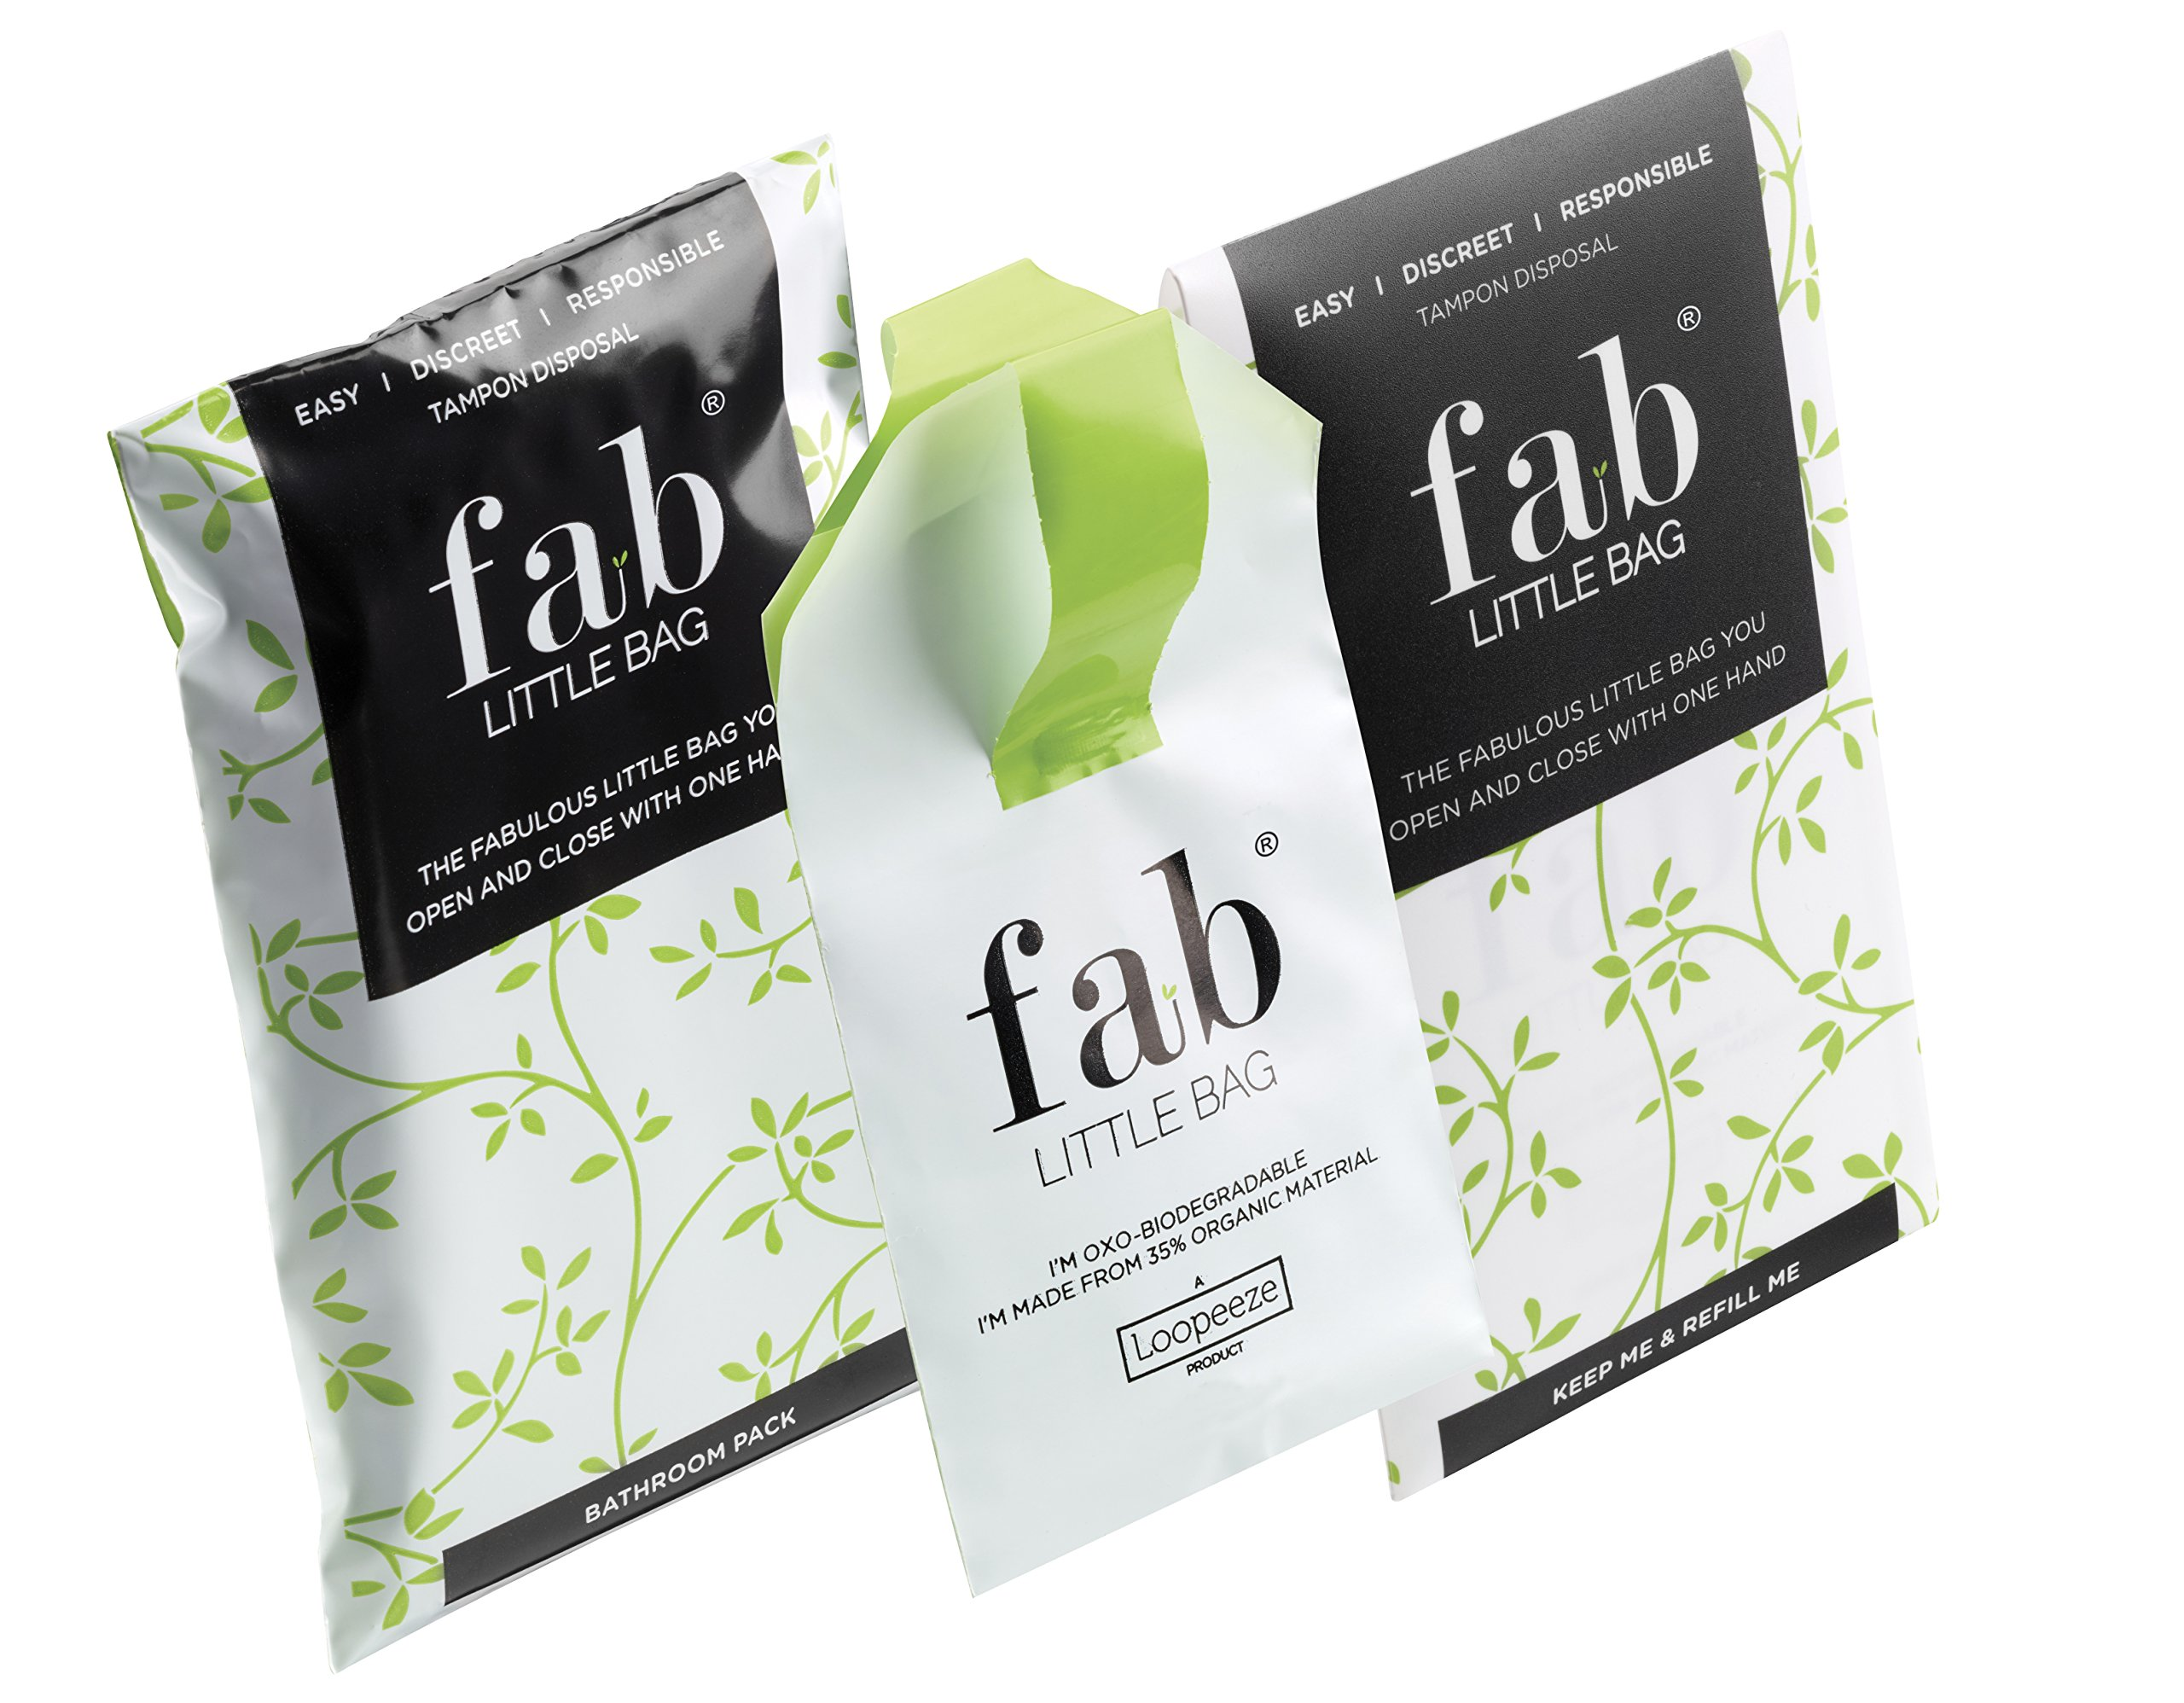 Fab Little Bag Sealable One Handed Tampon Disposal Bag 26g (Pack of 12)